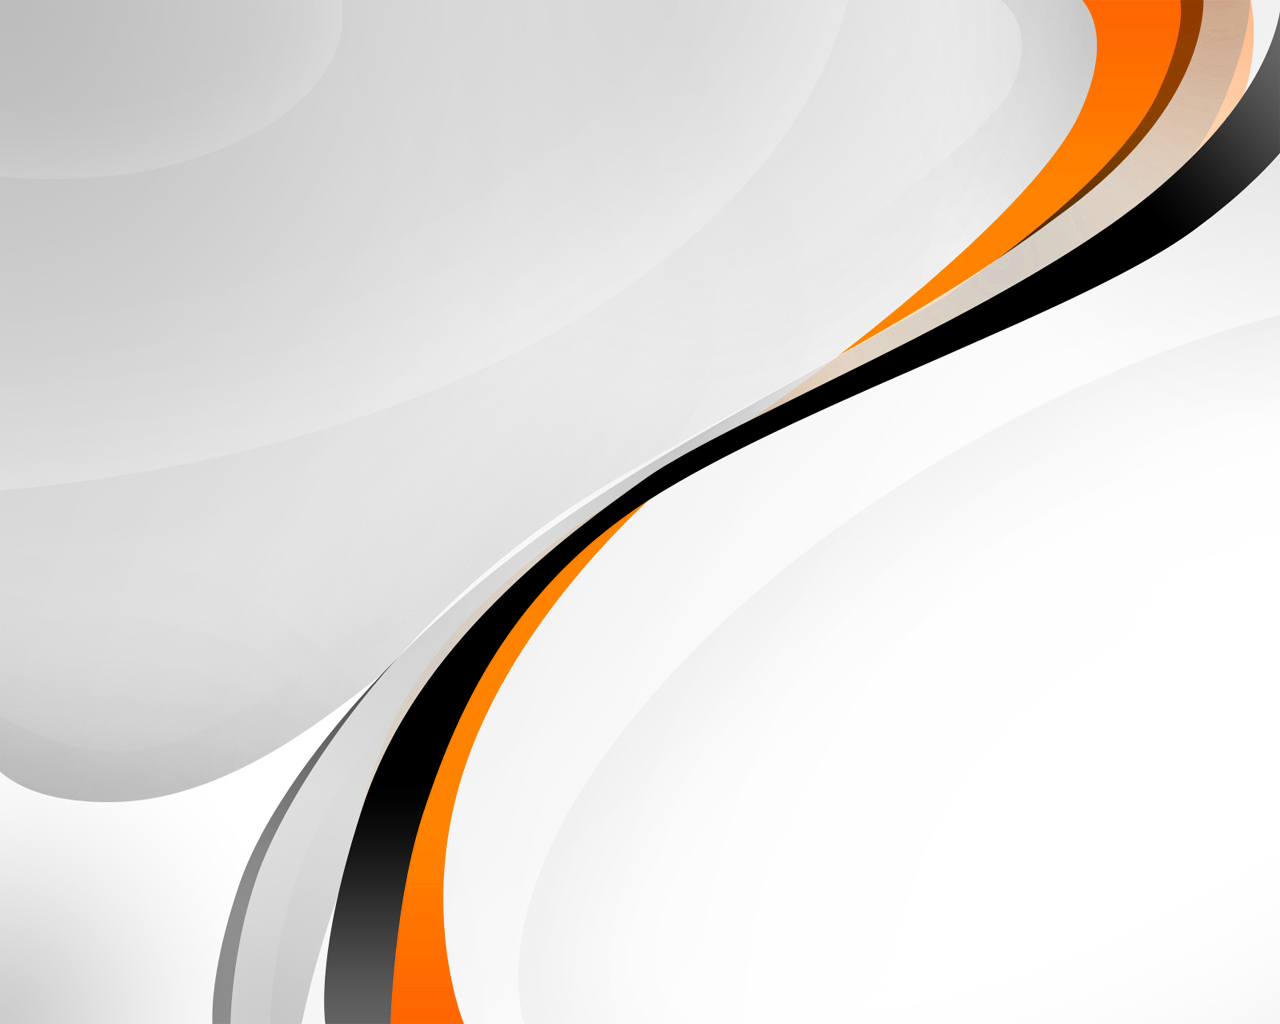 White Computer Wallpapers Desktop Backgrounds 1280x1024 ID48992 1280x1024